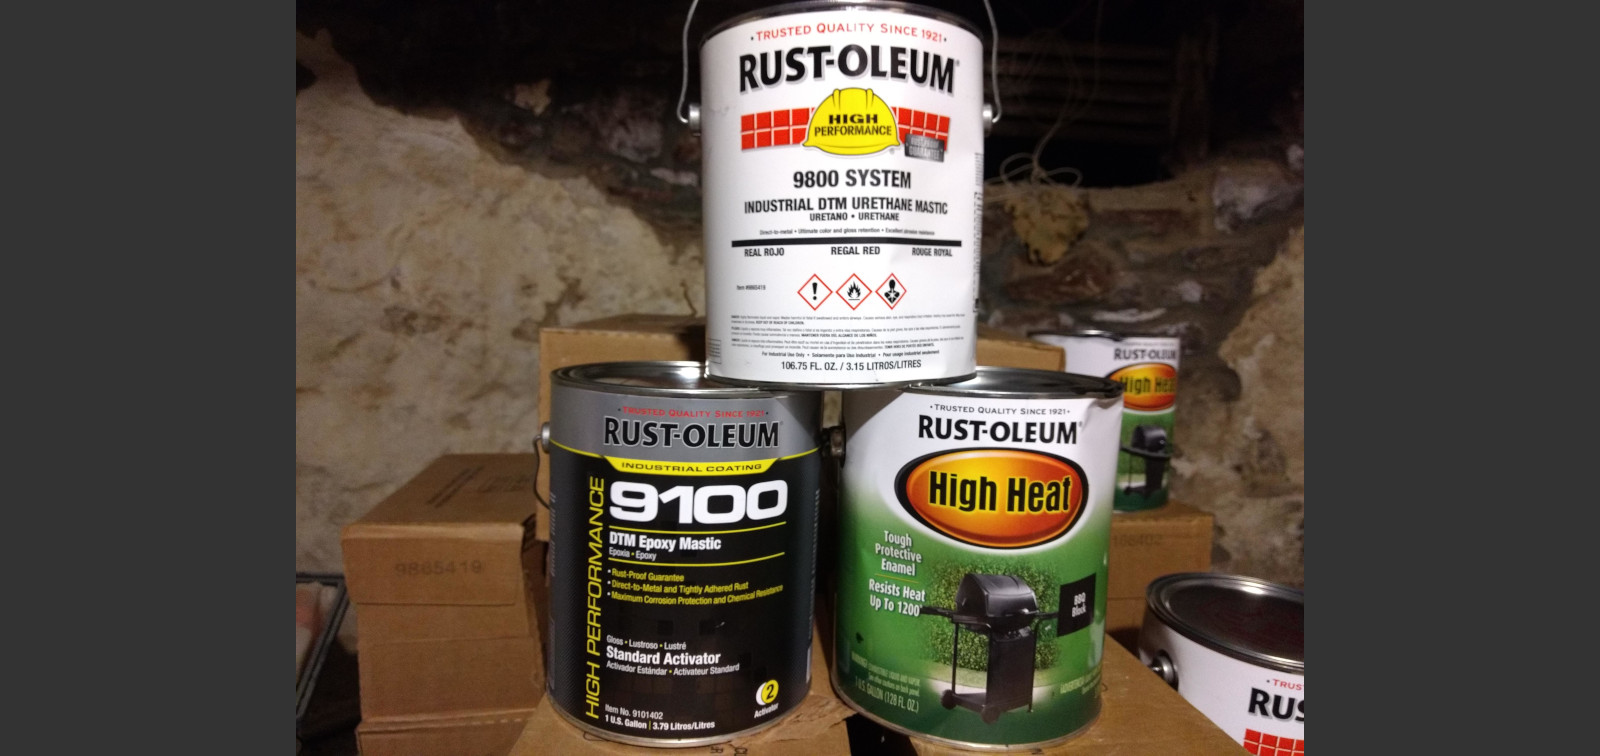 3 gallon cans of Rustoleum paint stacked